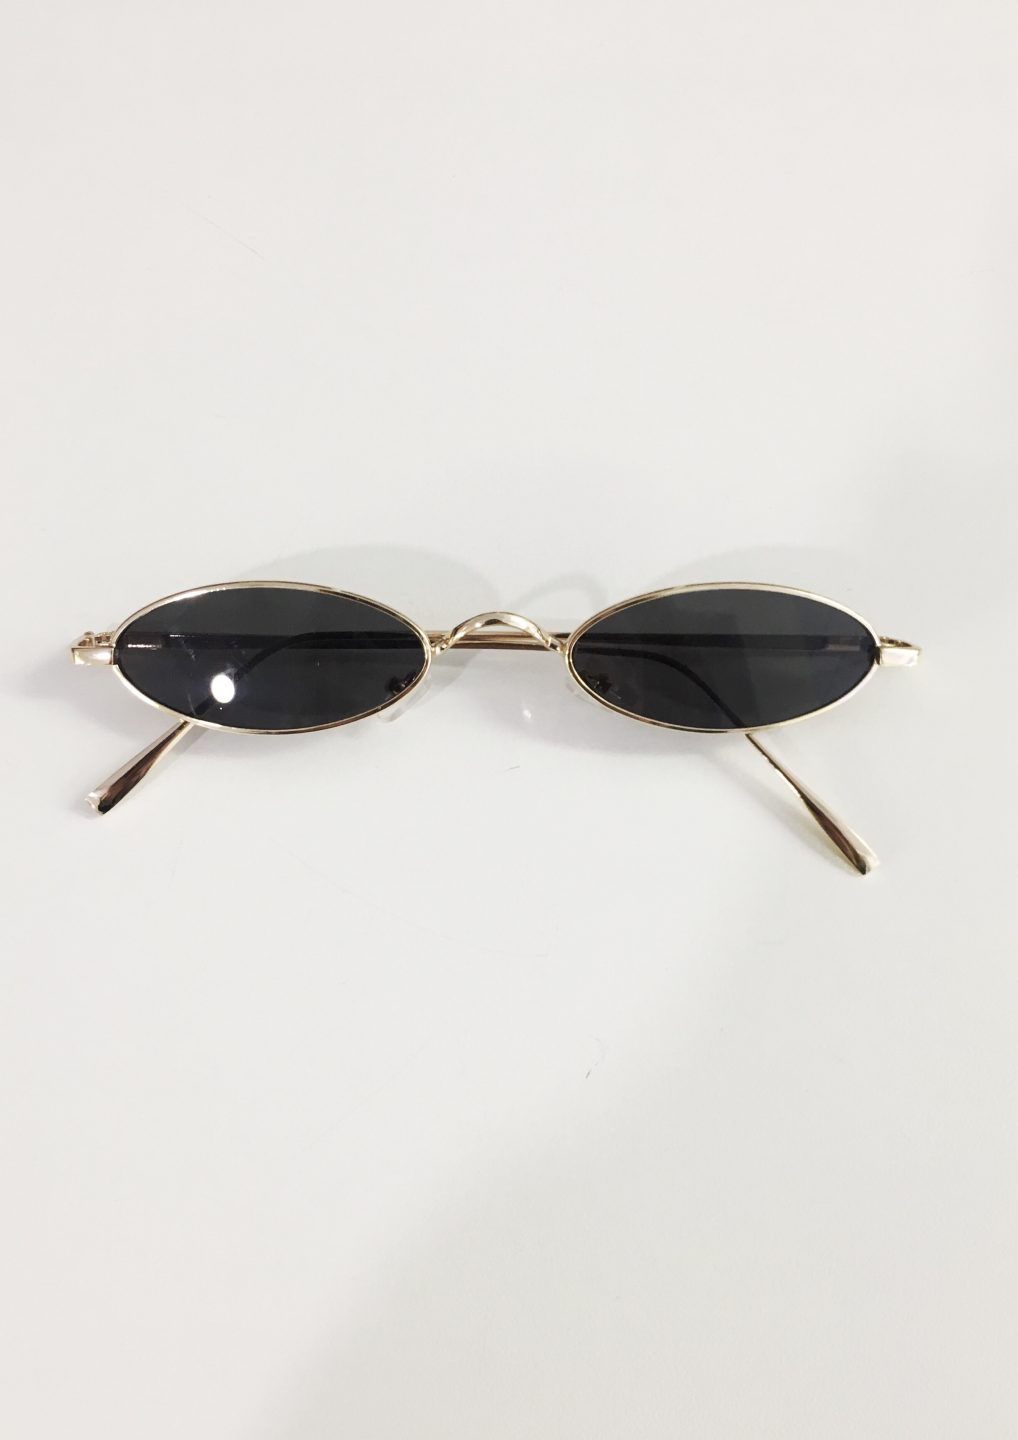 57daa30626 Polly Small Oval Sunglasses Black - DayDreamers